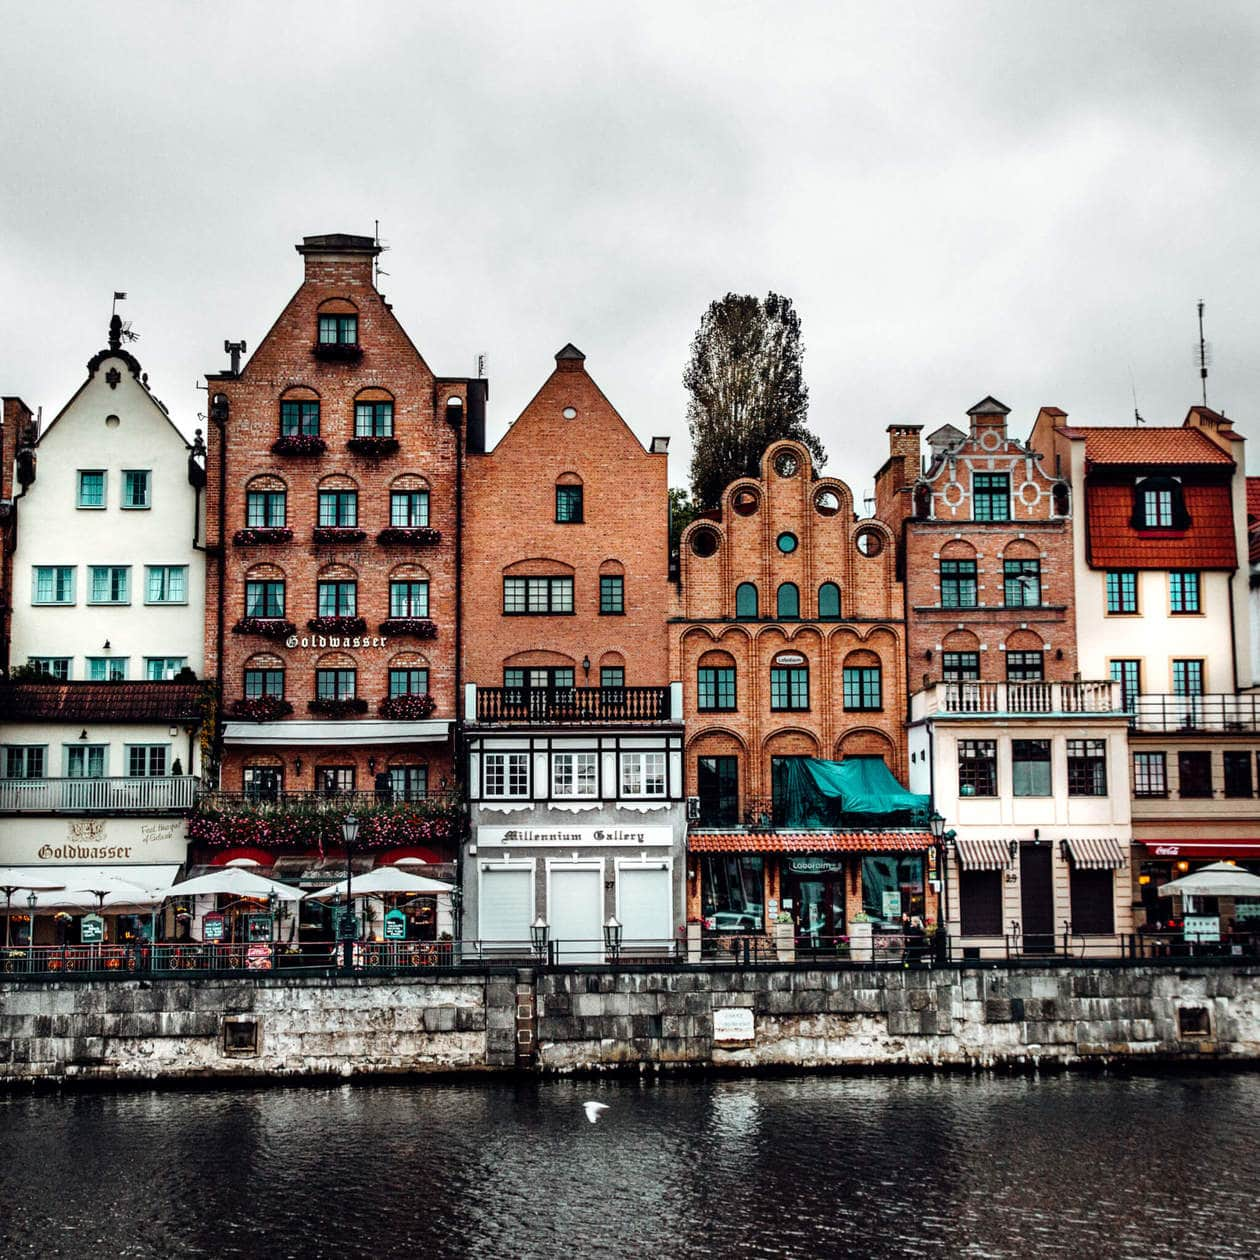 Motlawa River // There is no shortage of picturesque views, cozy streets and Instagrammable photo spots in Gdansk, Poland. Click to discover my top 6 streets for photo inspiration in Old Town.